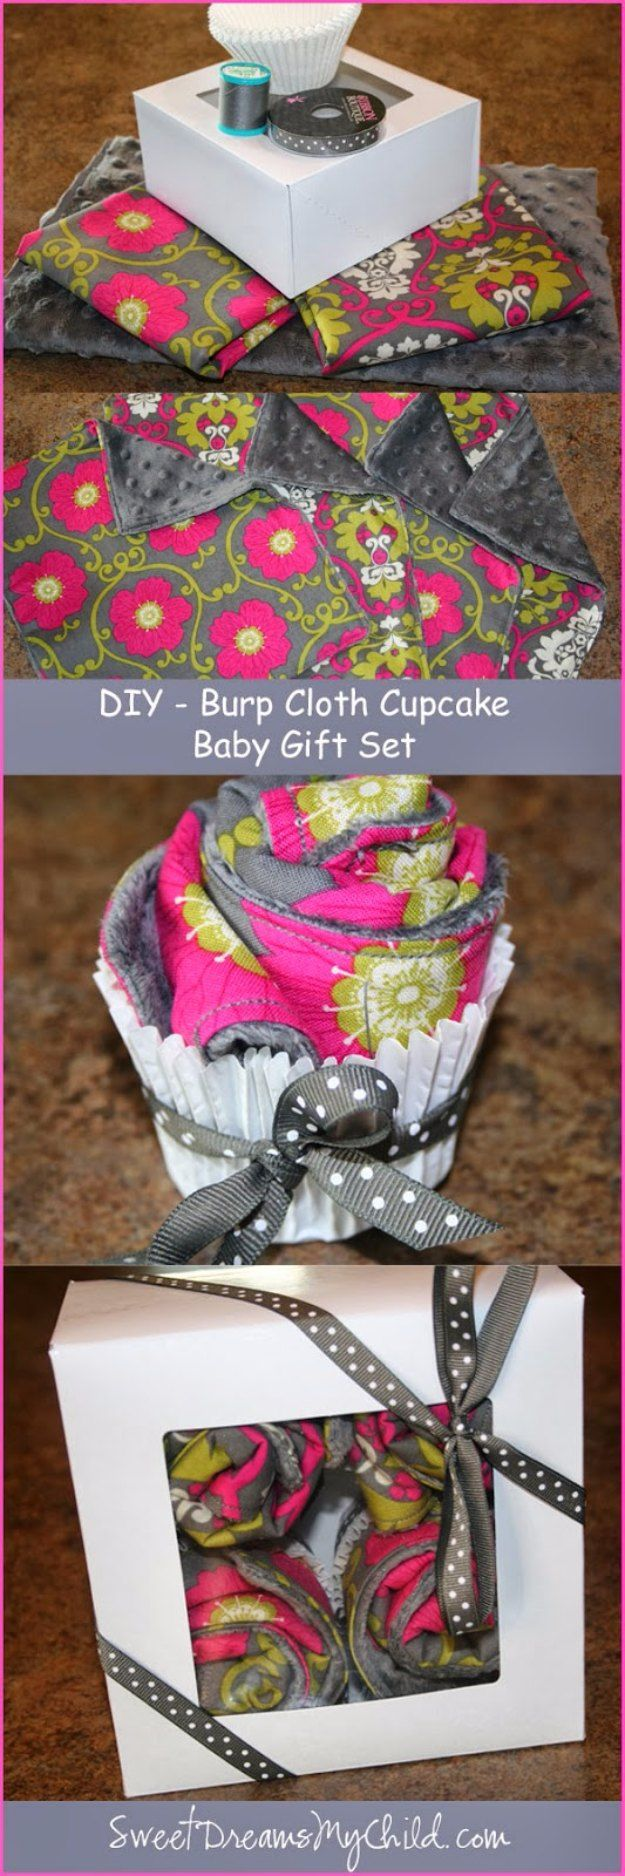 42 Fabulous Diy Baby Shower Gifts Sewing Patterns Diy